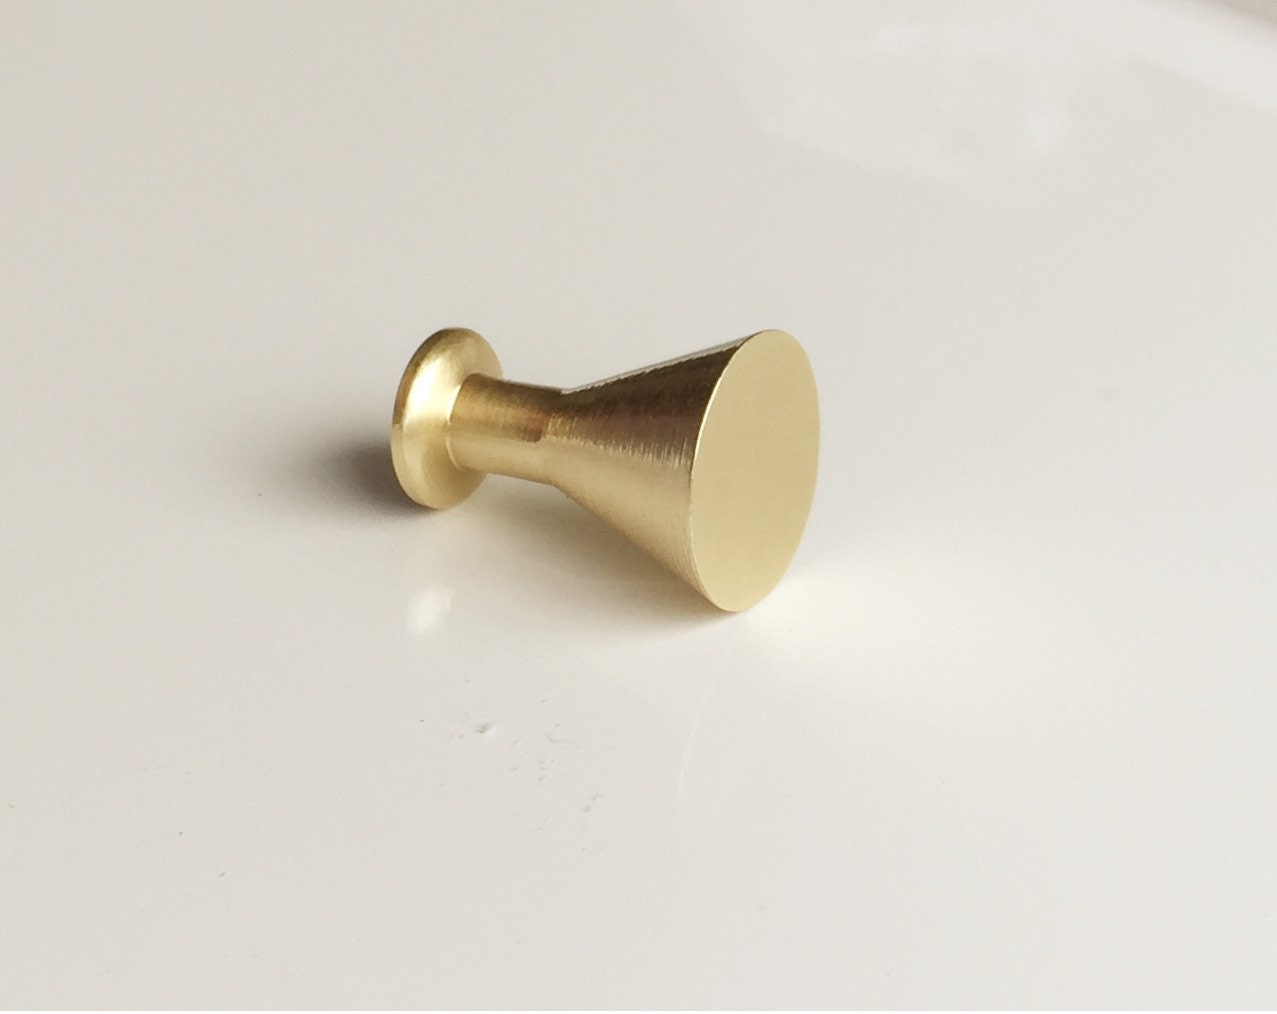 Peggy Satin Brass Cabinet Knob Drawer Pull